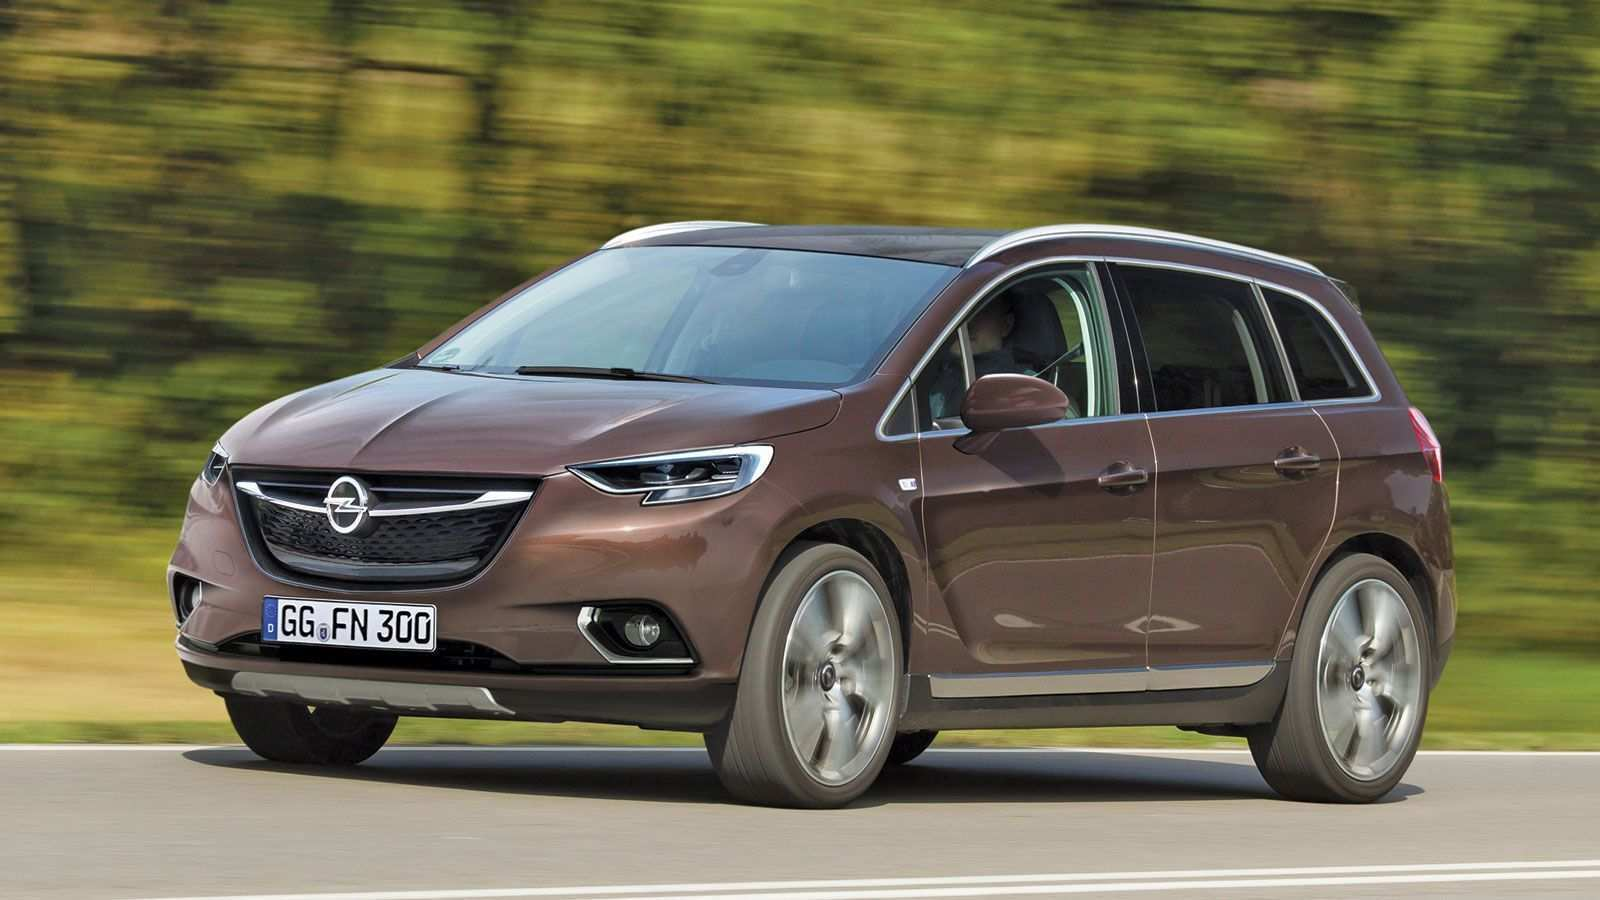 23 Best Review Suv Opel 2020 History for Suv Opel 2020